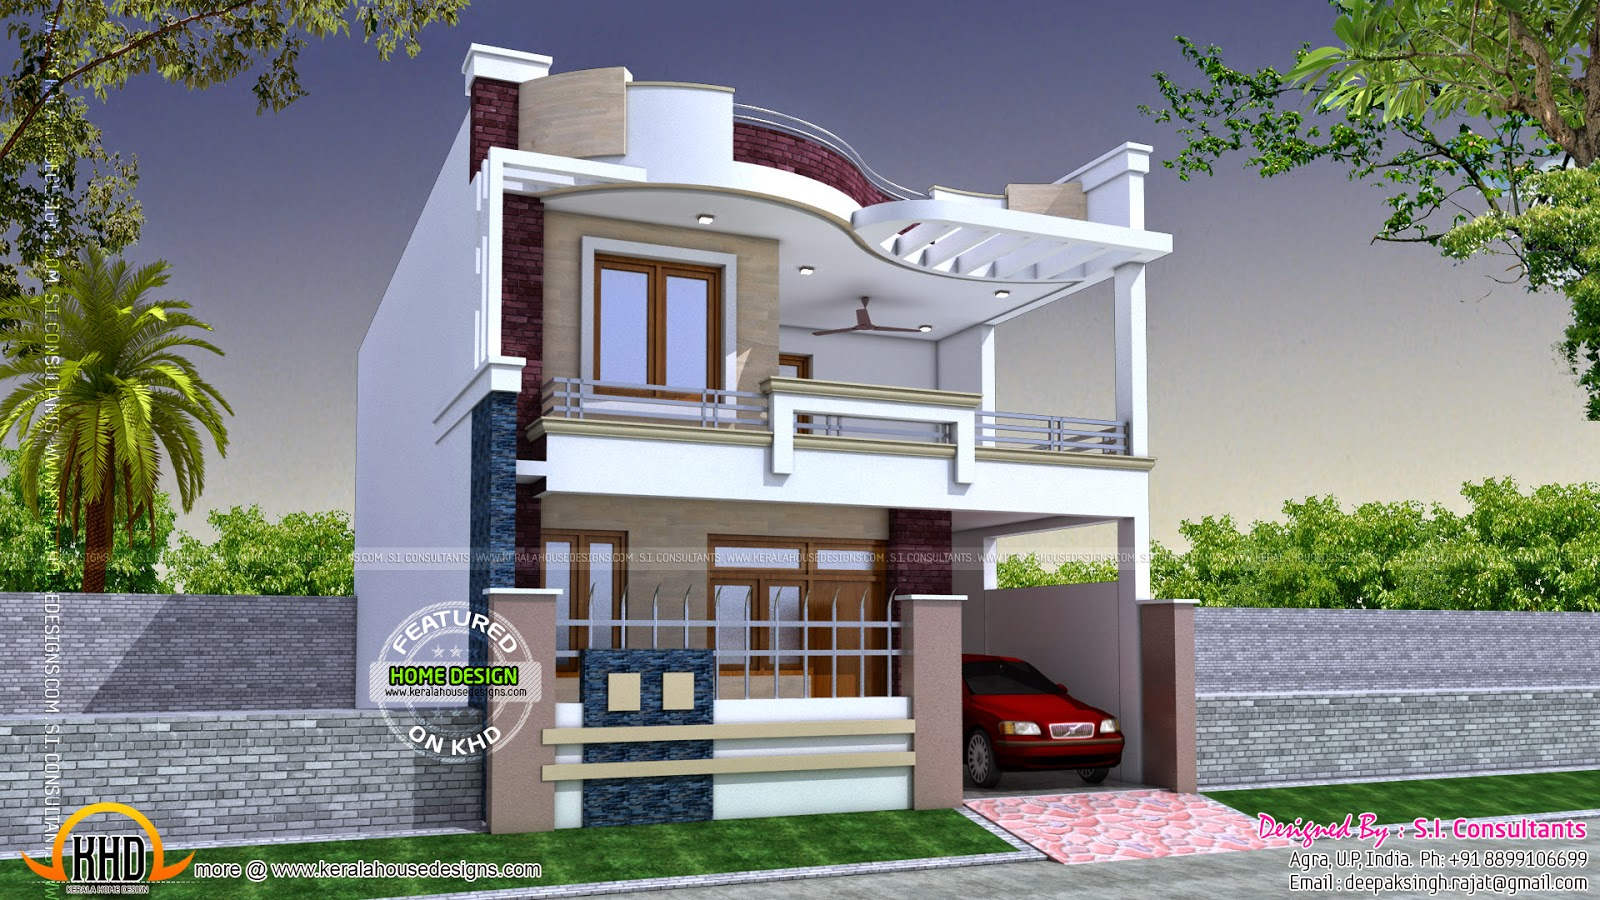 Modern indian home design kerala home design and floor plans for Indian house model